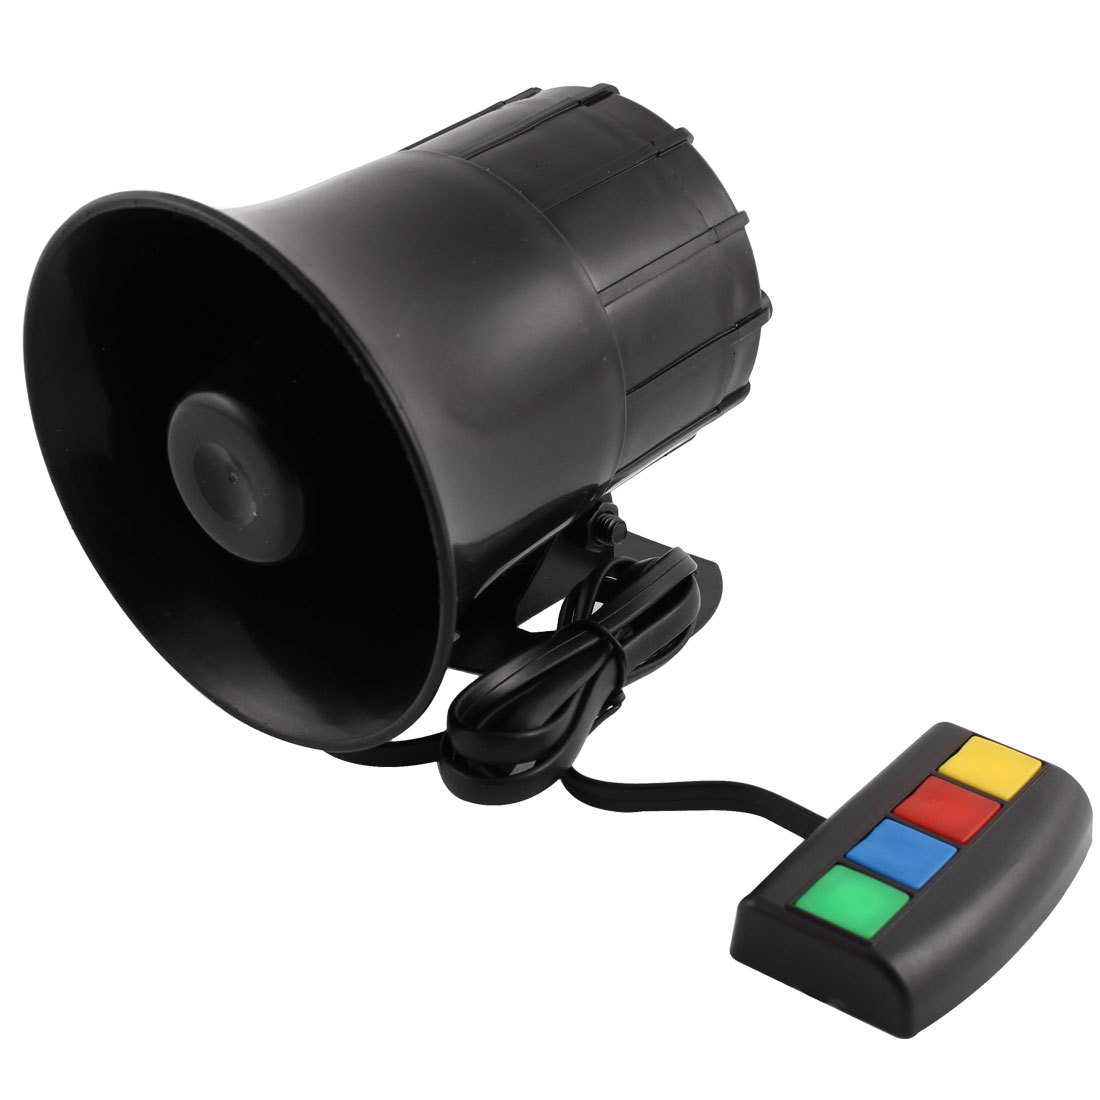 DC 12V Multi-sounds Electronic Musical Horn for Motorcycle